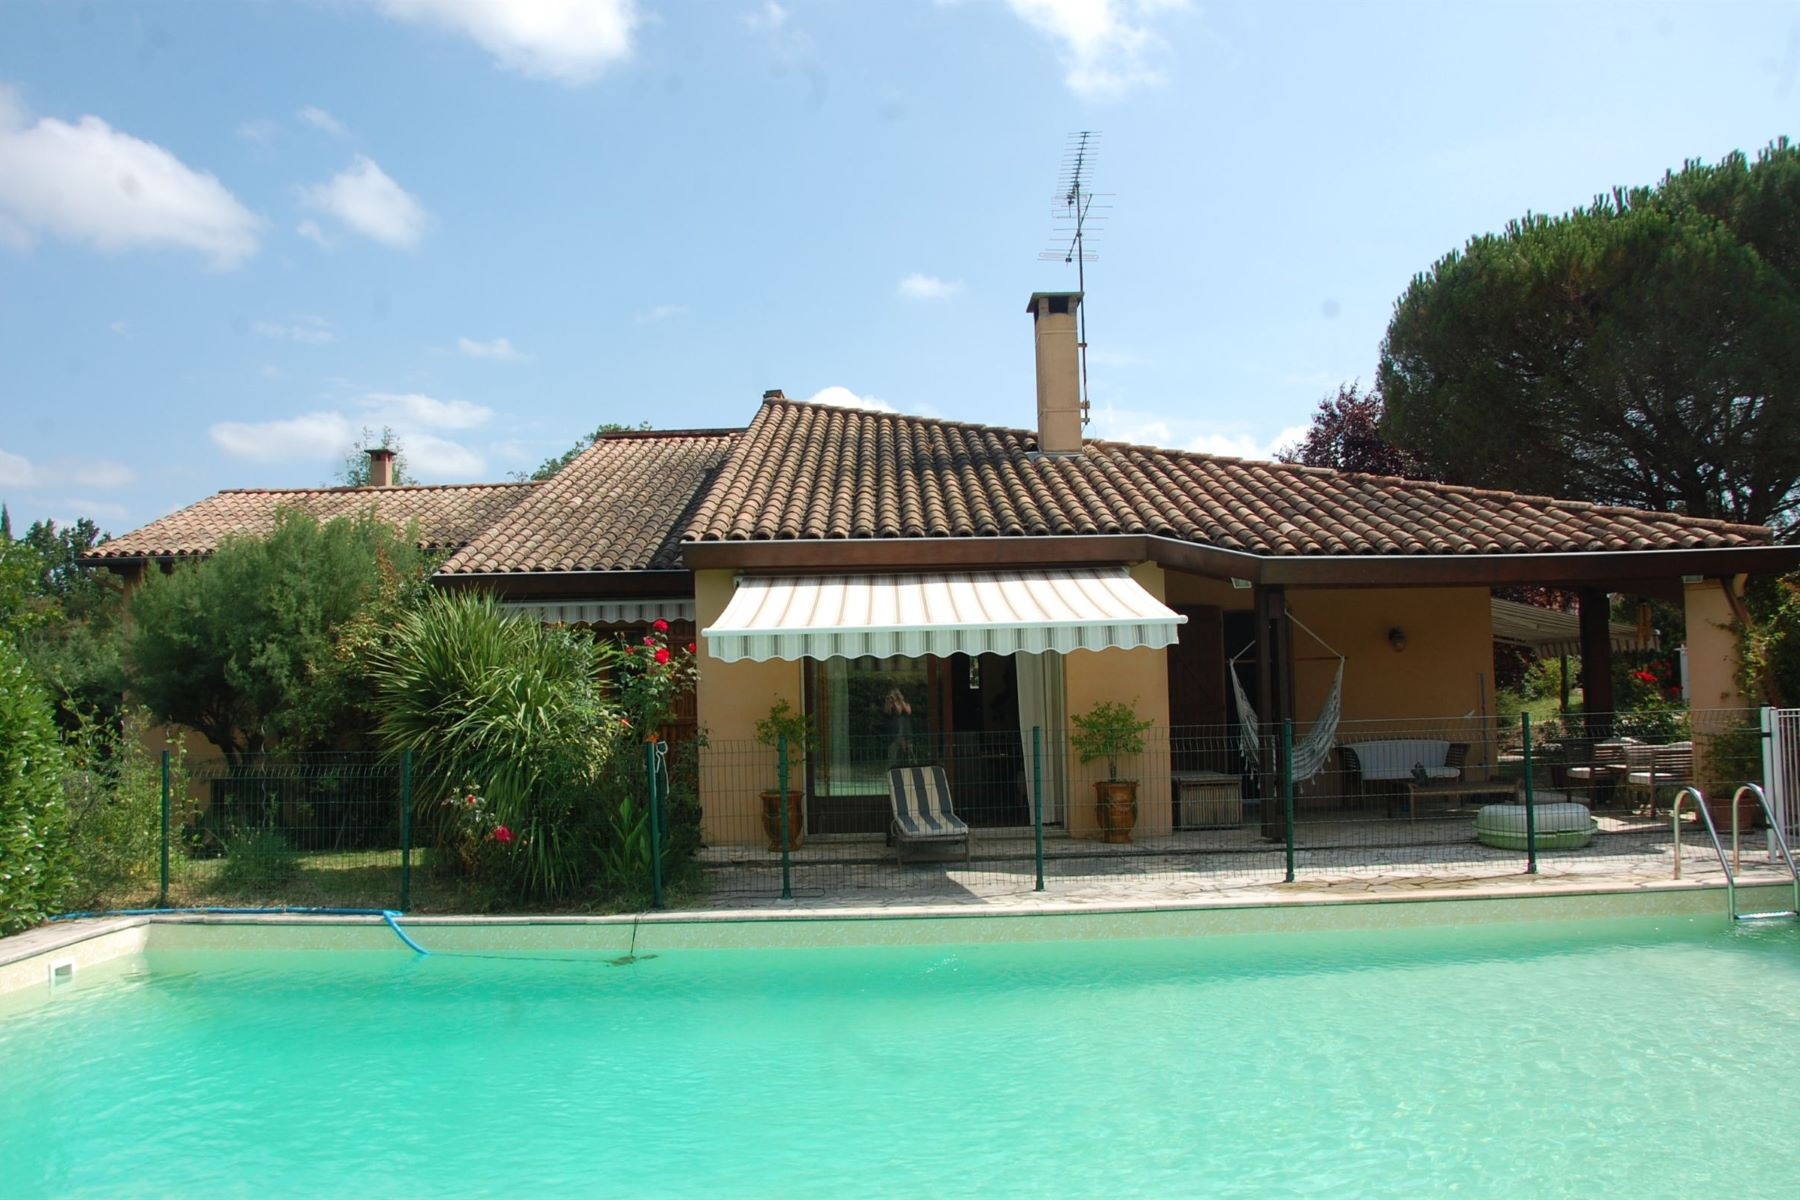 Casa Unifamiliar por un Venta en all amendieries by foot Lavaur, Midi Pyrenees, 81500 Francia